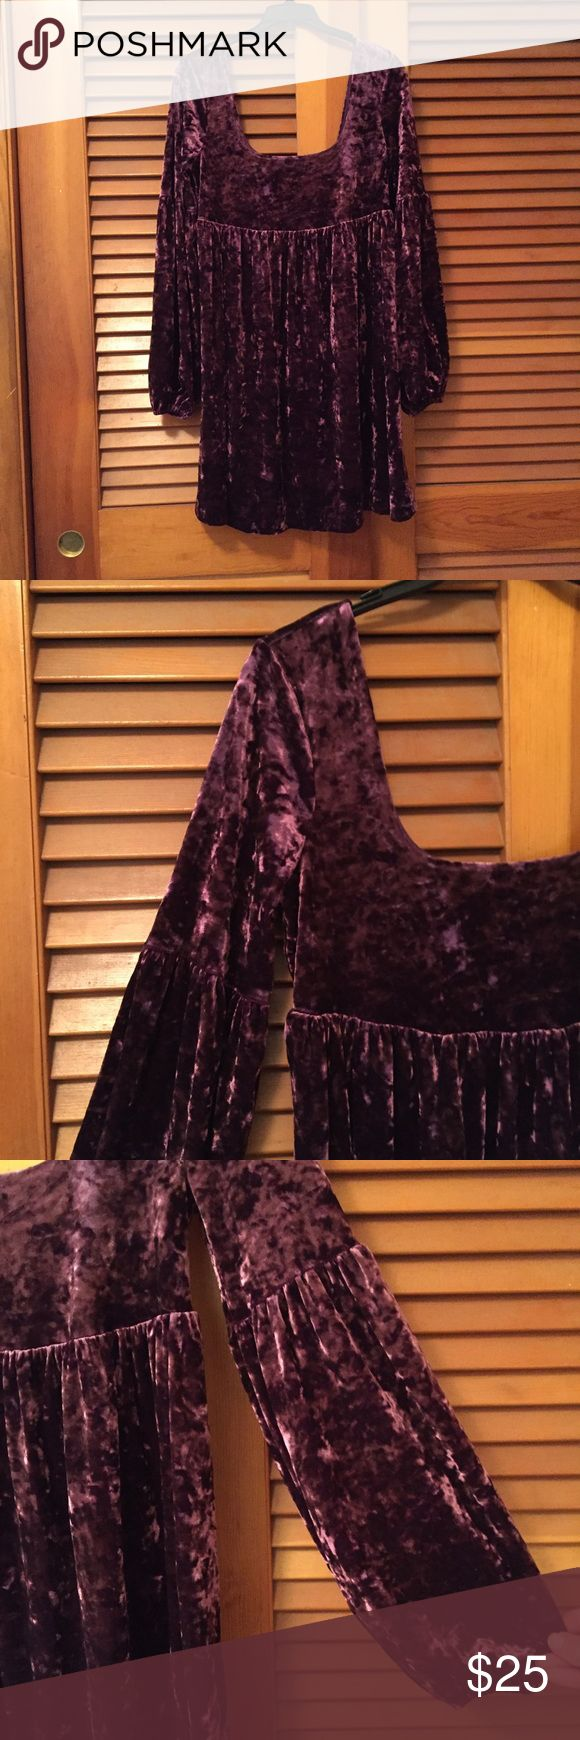 FP stretch velvet solid Oh So Easy babydoll dress Beautiful Free People stretch velvet solid Oh So Easy babydoll dress. Great for the upcoming festival season and summer months. In excellent condition. Price is firm. Free People Dresses